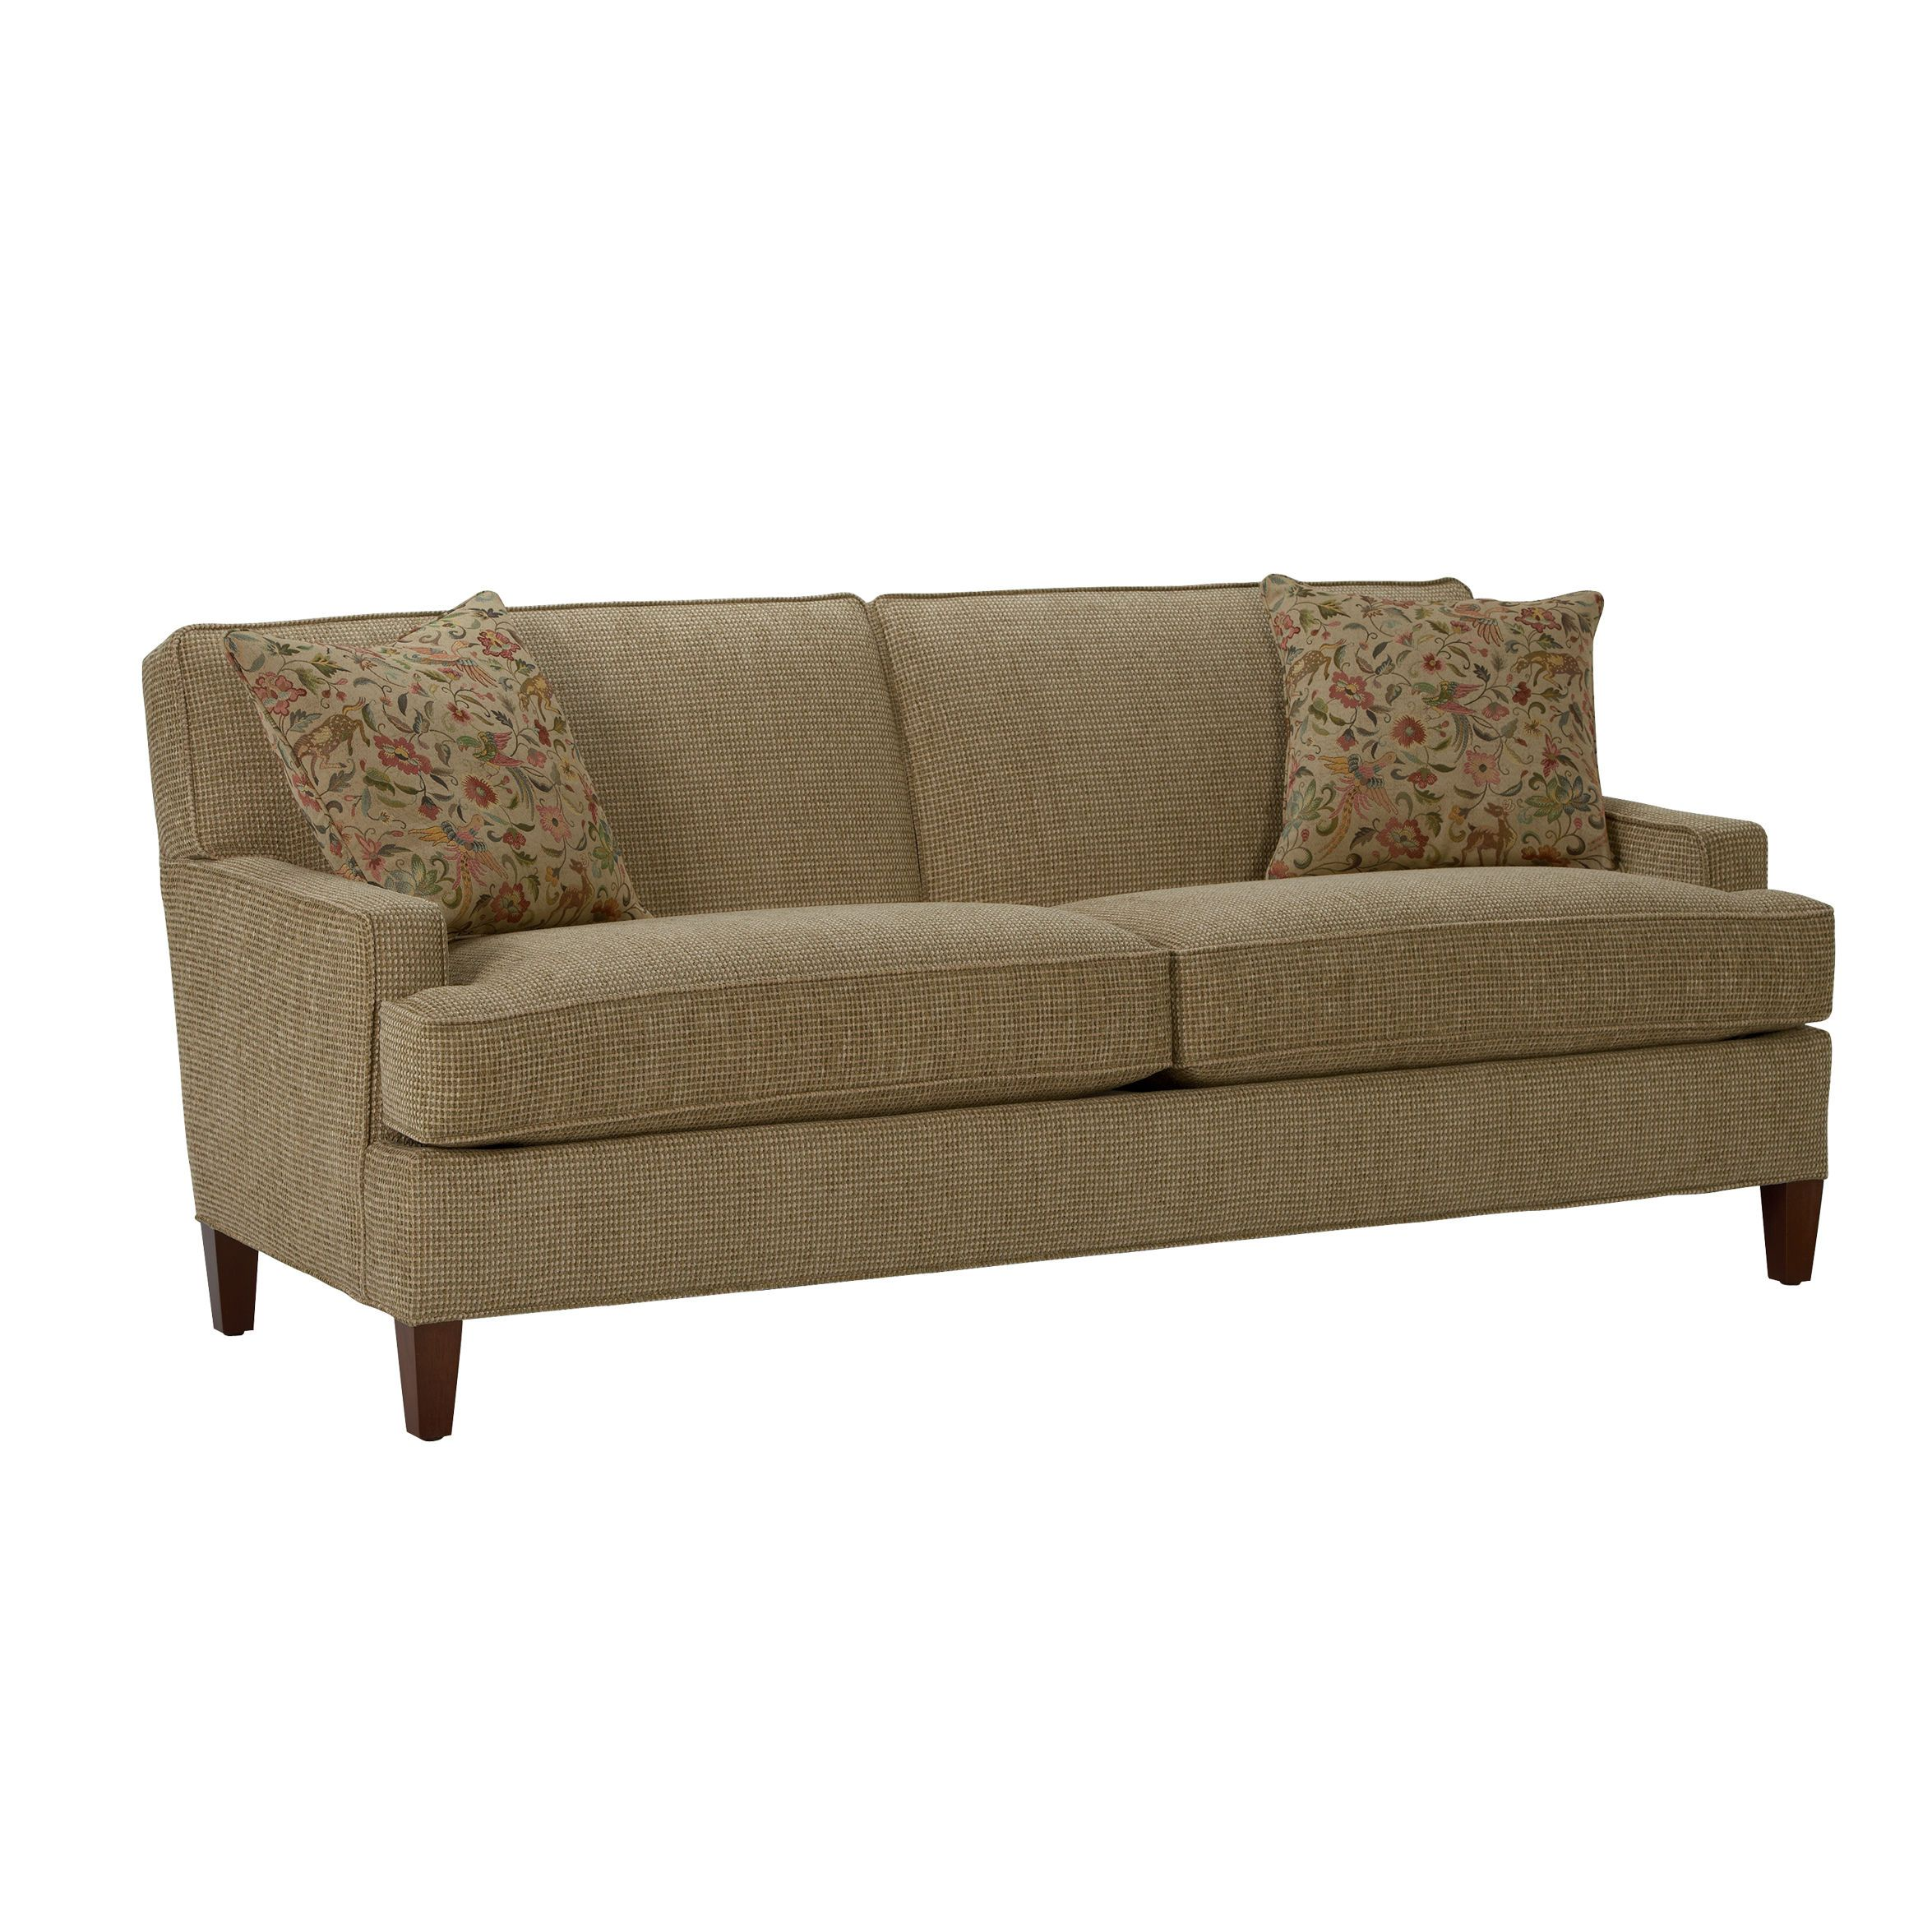 Wondrous Upholstery Furniture Tip Do Not Remove Cushion Covers For Download Free Architecture Designs Ogrambritishbridgeorg